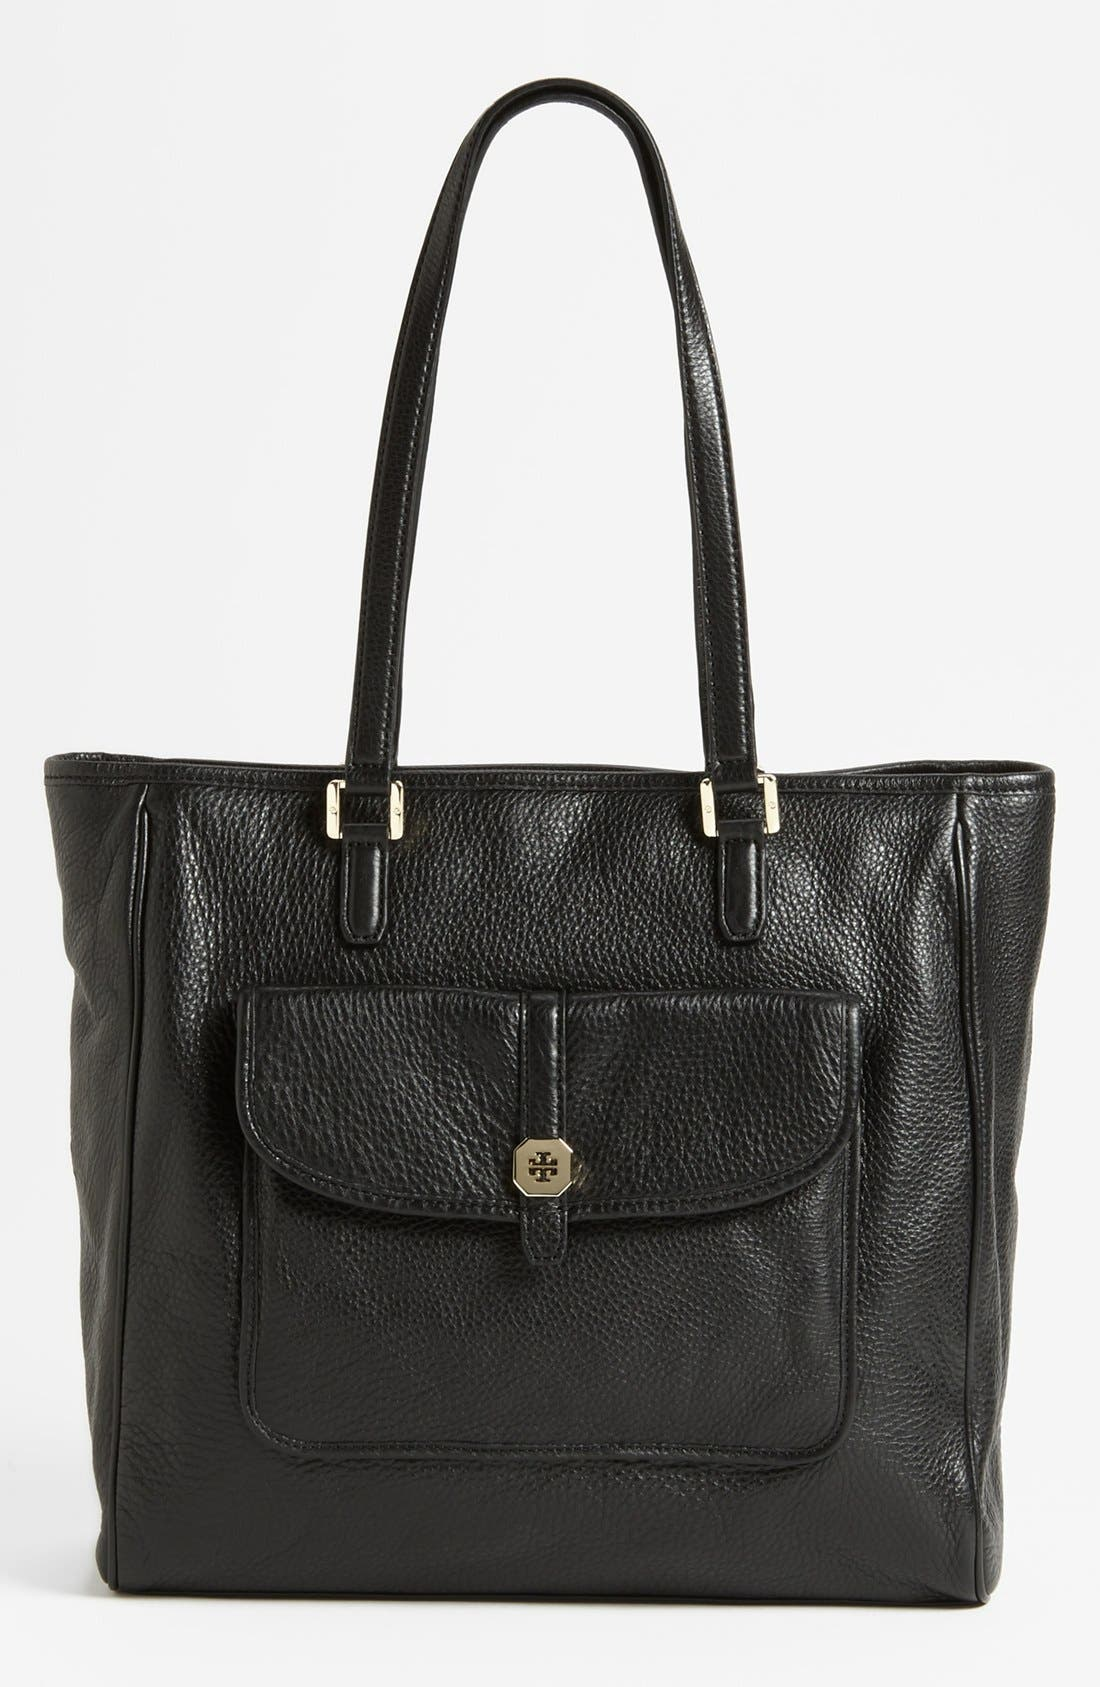 Alternate Image 1 Selected - Tory Burch 'Clay' Leather Tote, Large